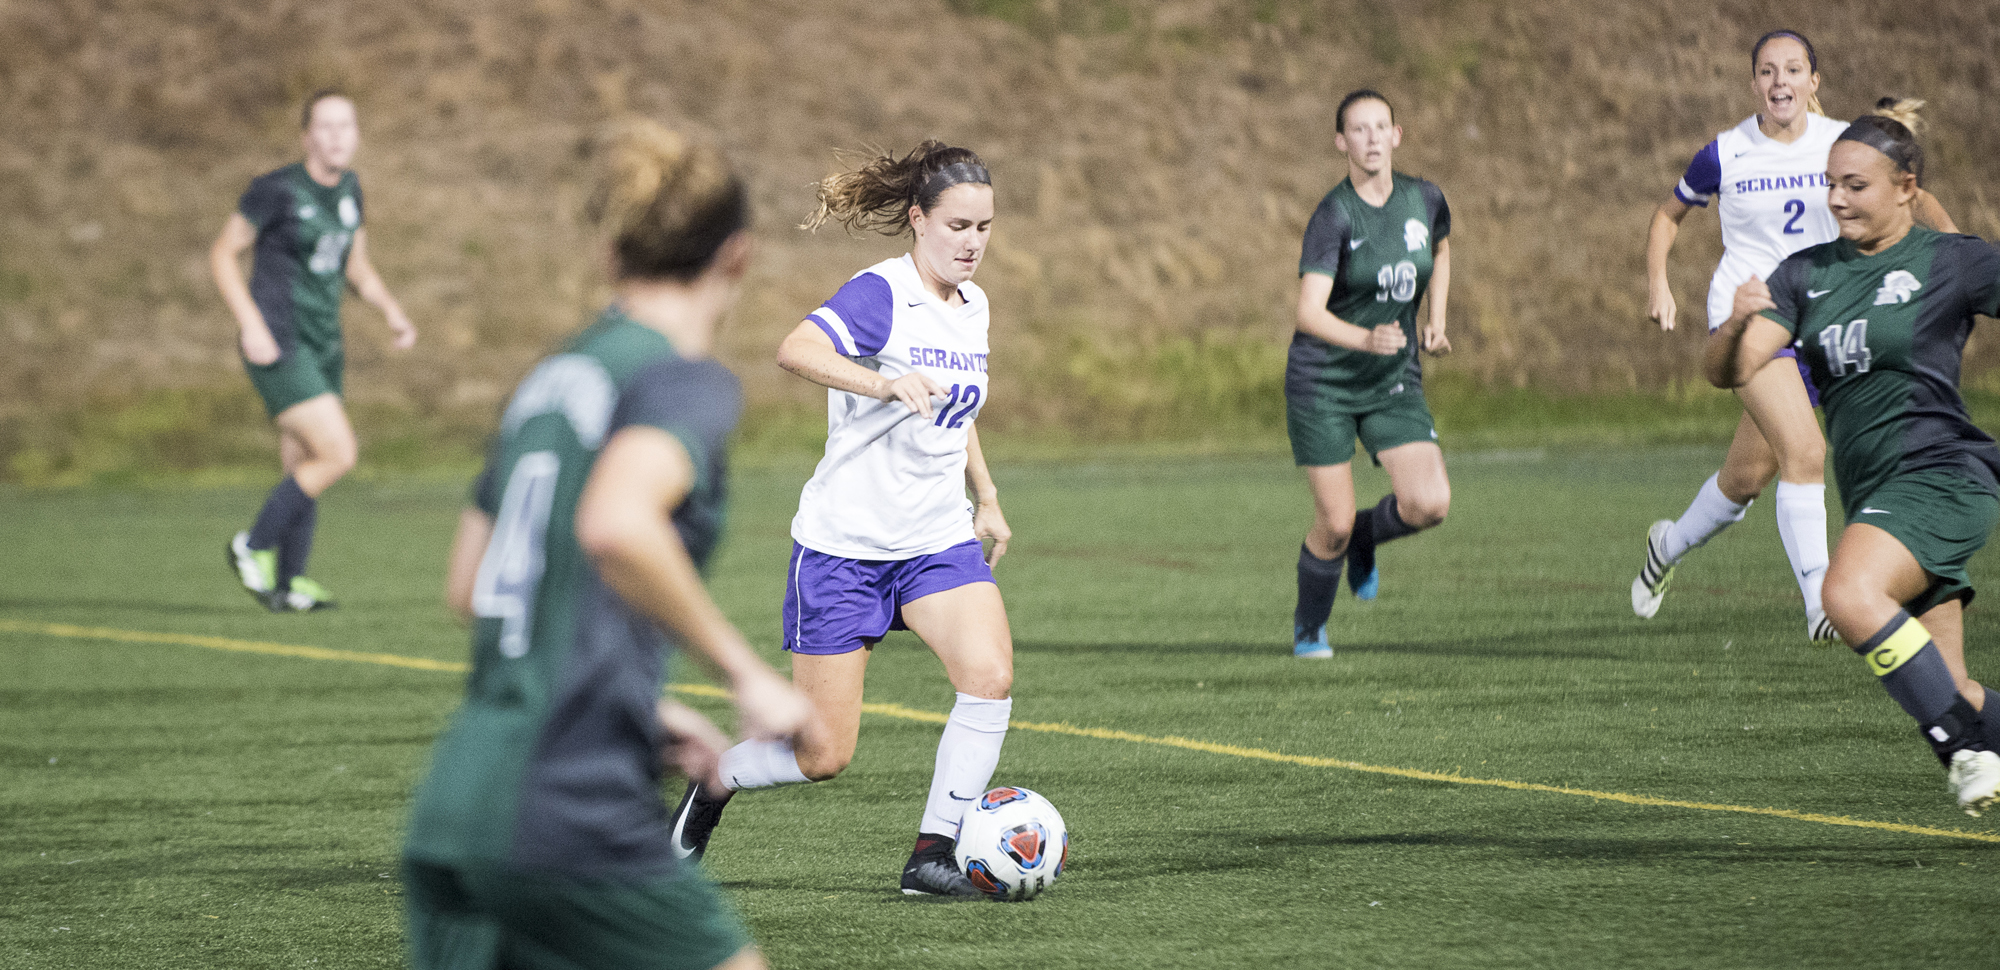 Junior midfielder Brittany Uricchio scored the match-winning goal in the 12th minute on Saturday.